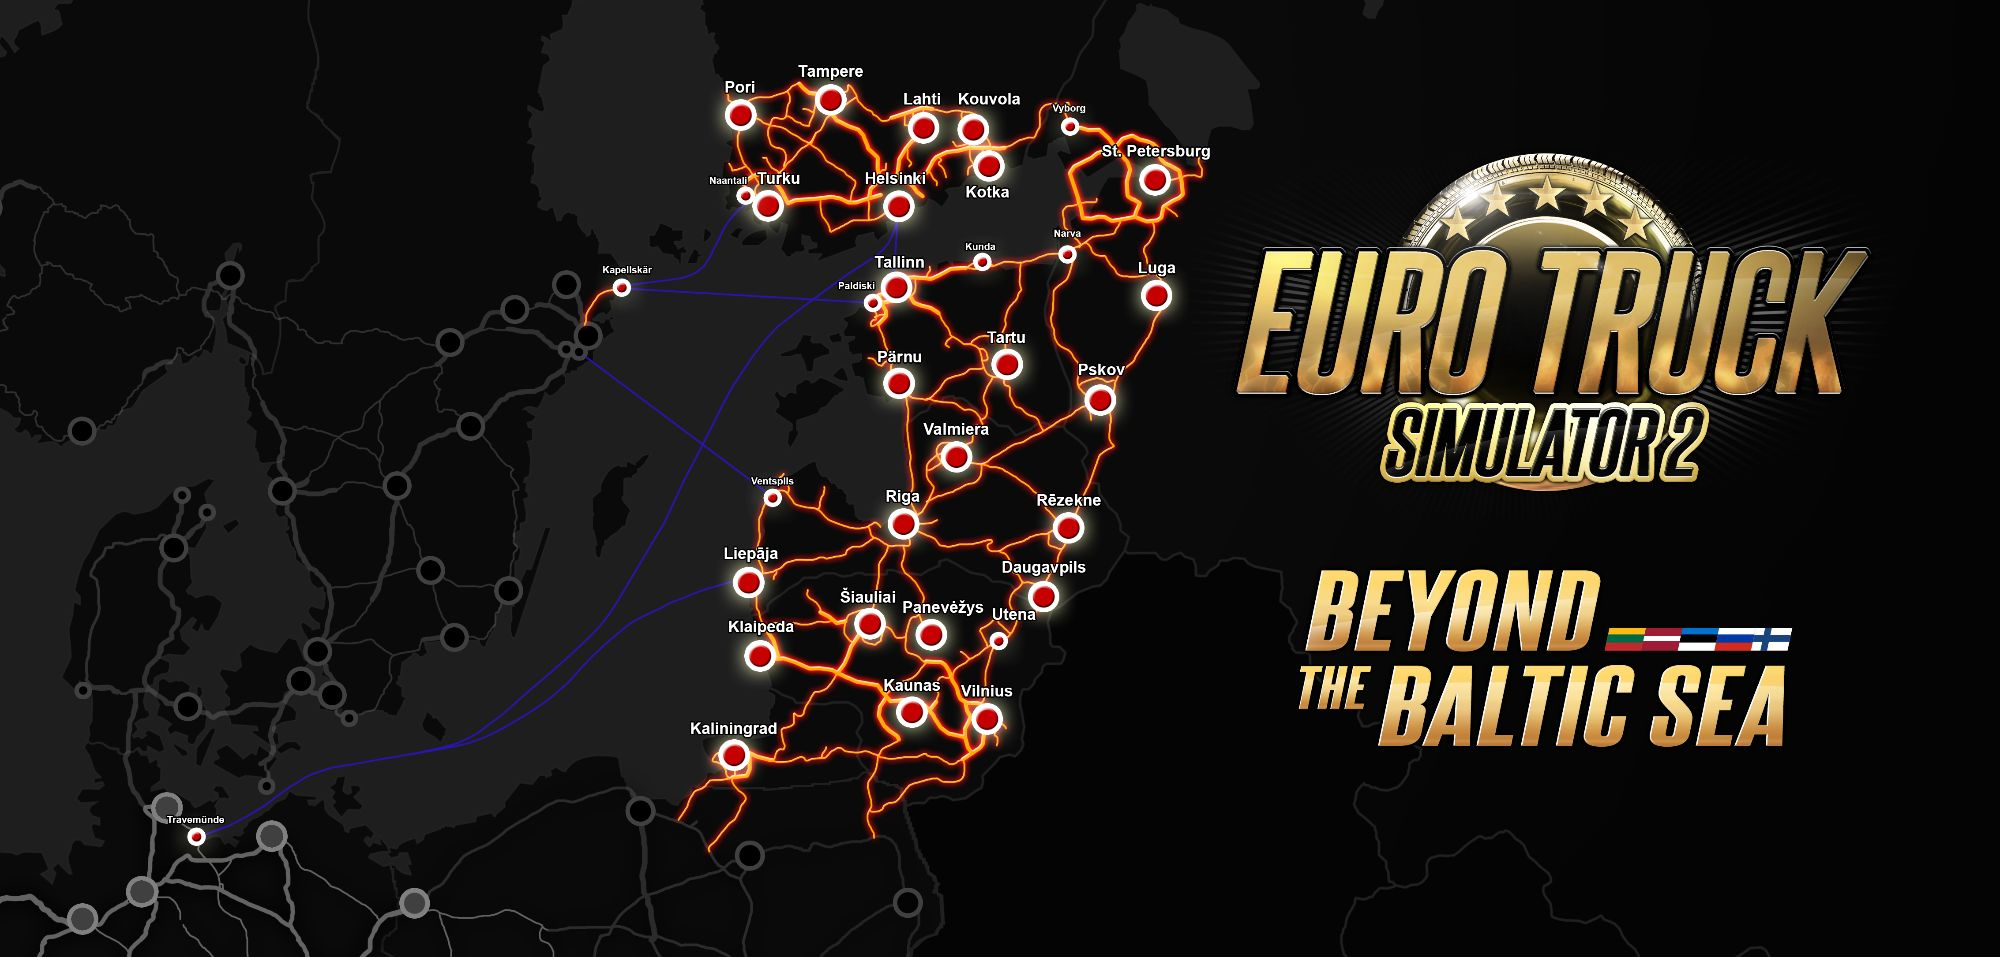 Image showing the map for Euro Truck Simulator 2 Beyond the Baltic Sea